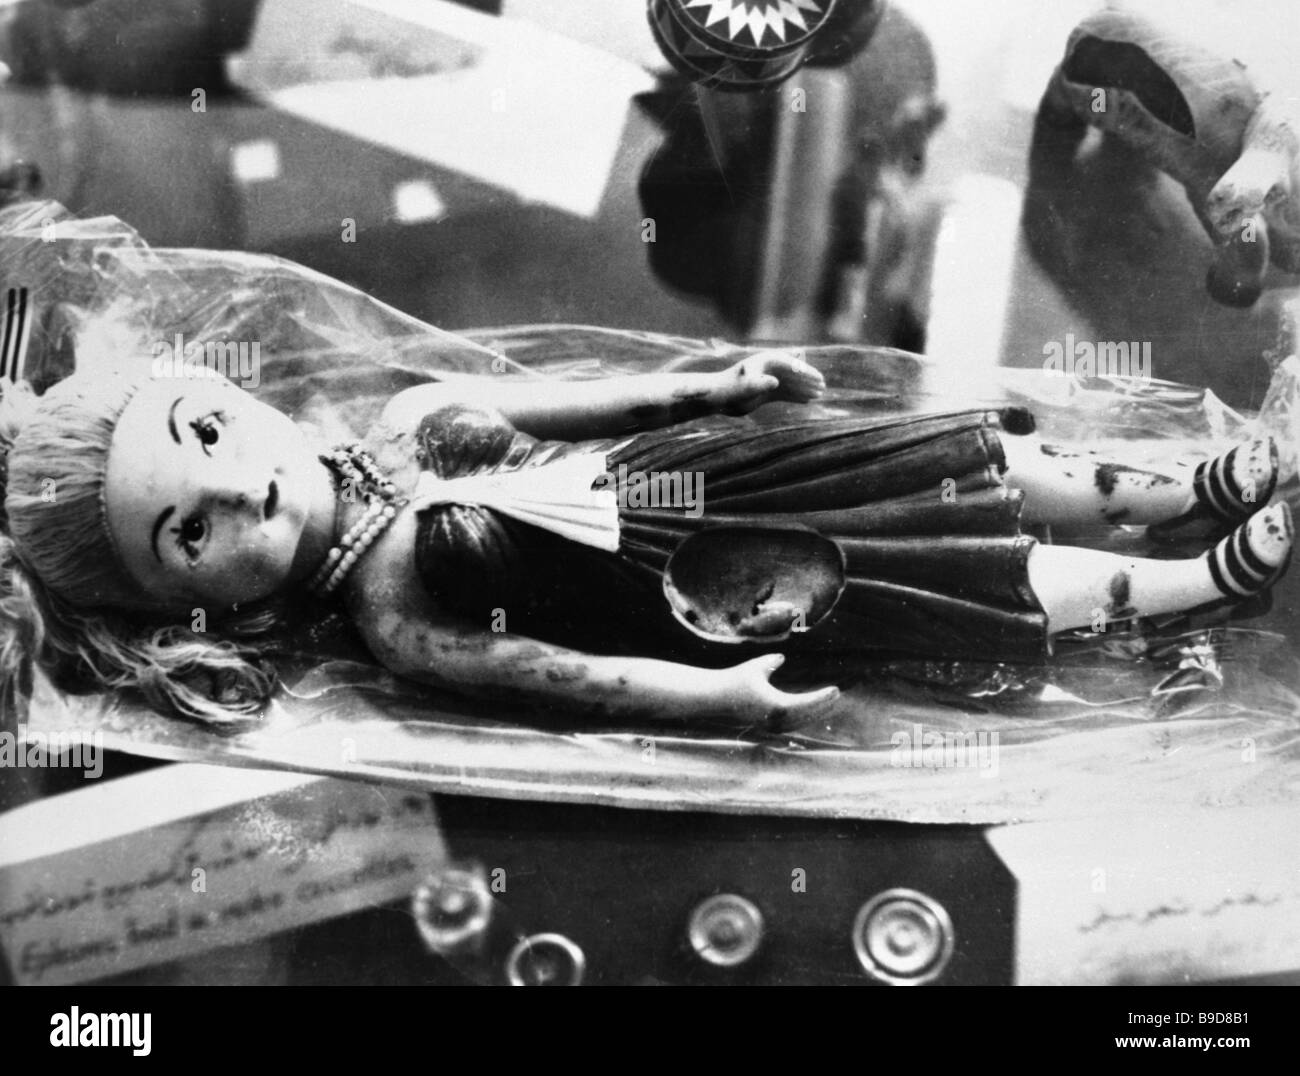 A doll stuffed with explosives by Afghan extremists - Stock Image